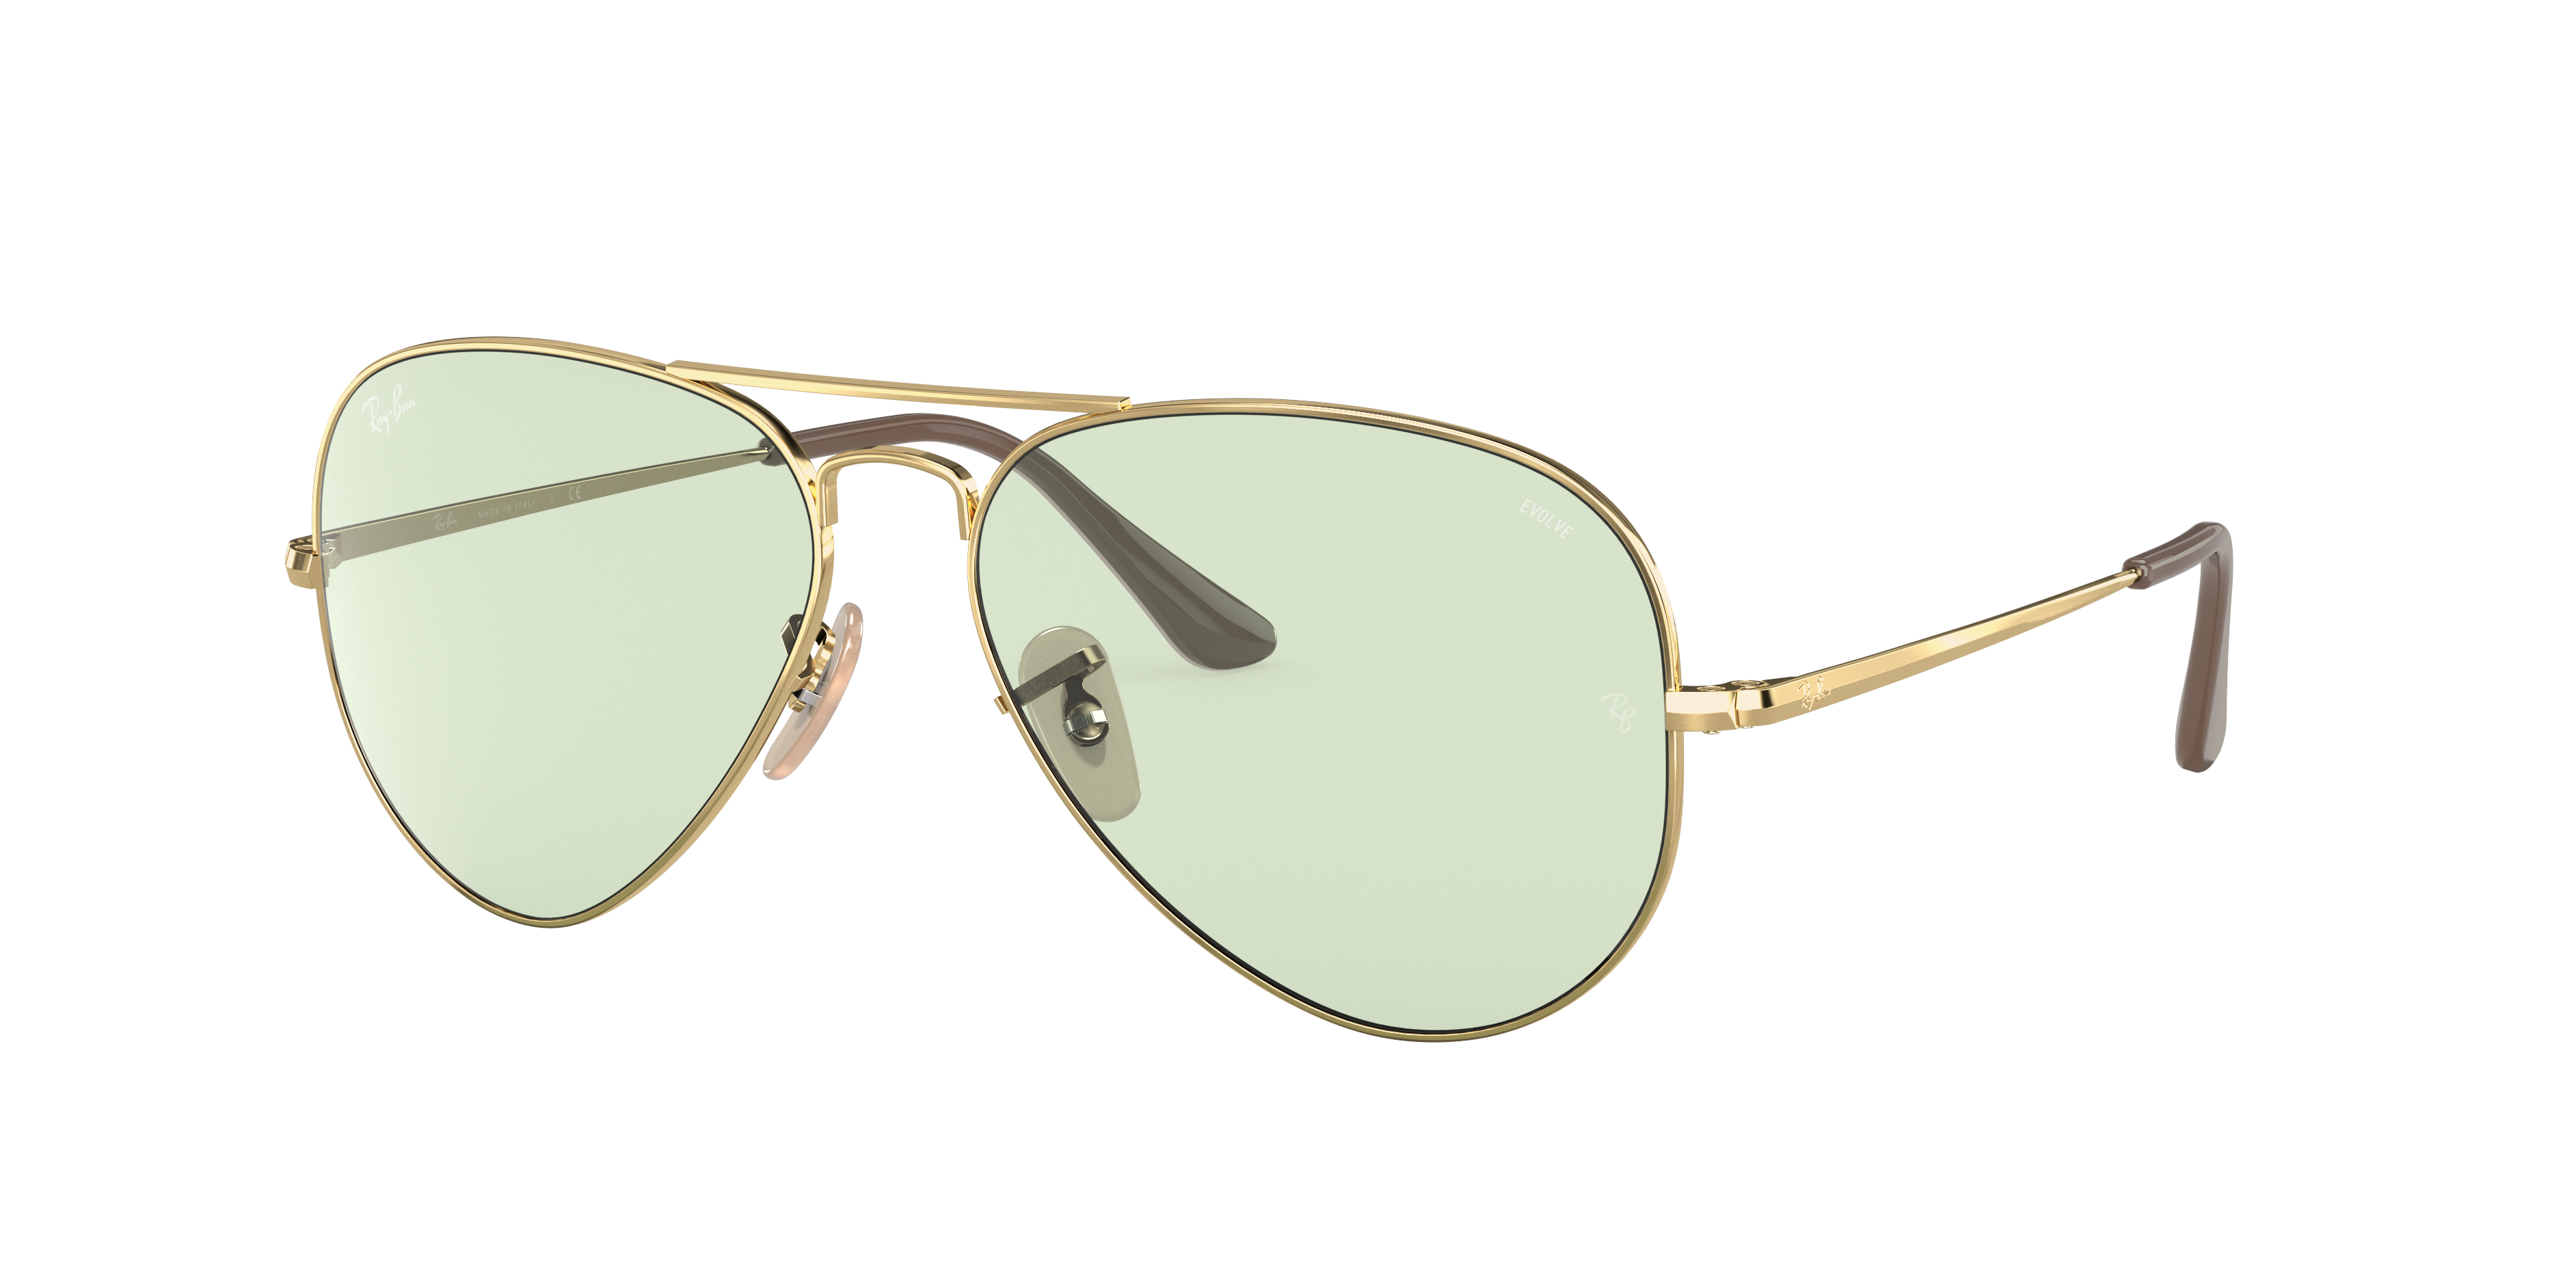 Ray-Ban Rb3689 Solid Evolve Gold, Green Lenses - RB3689